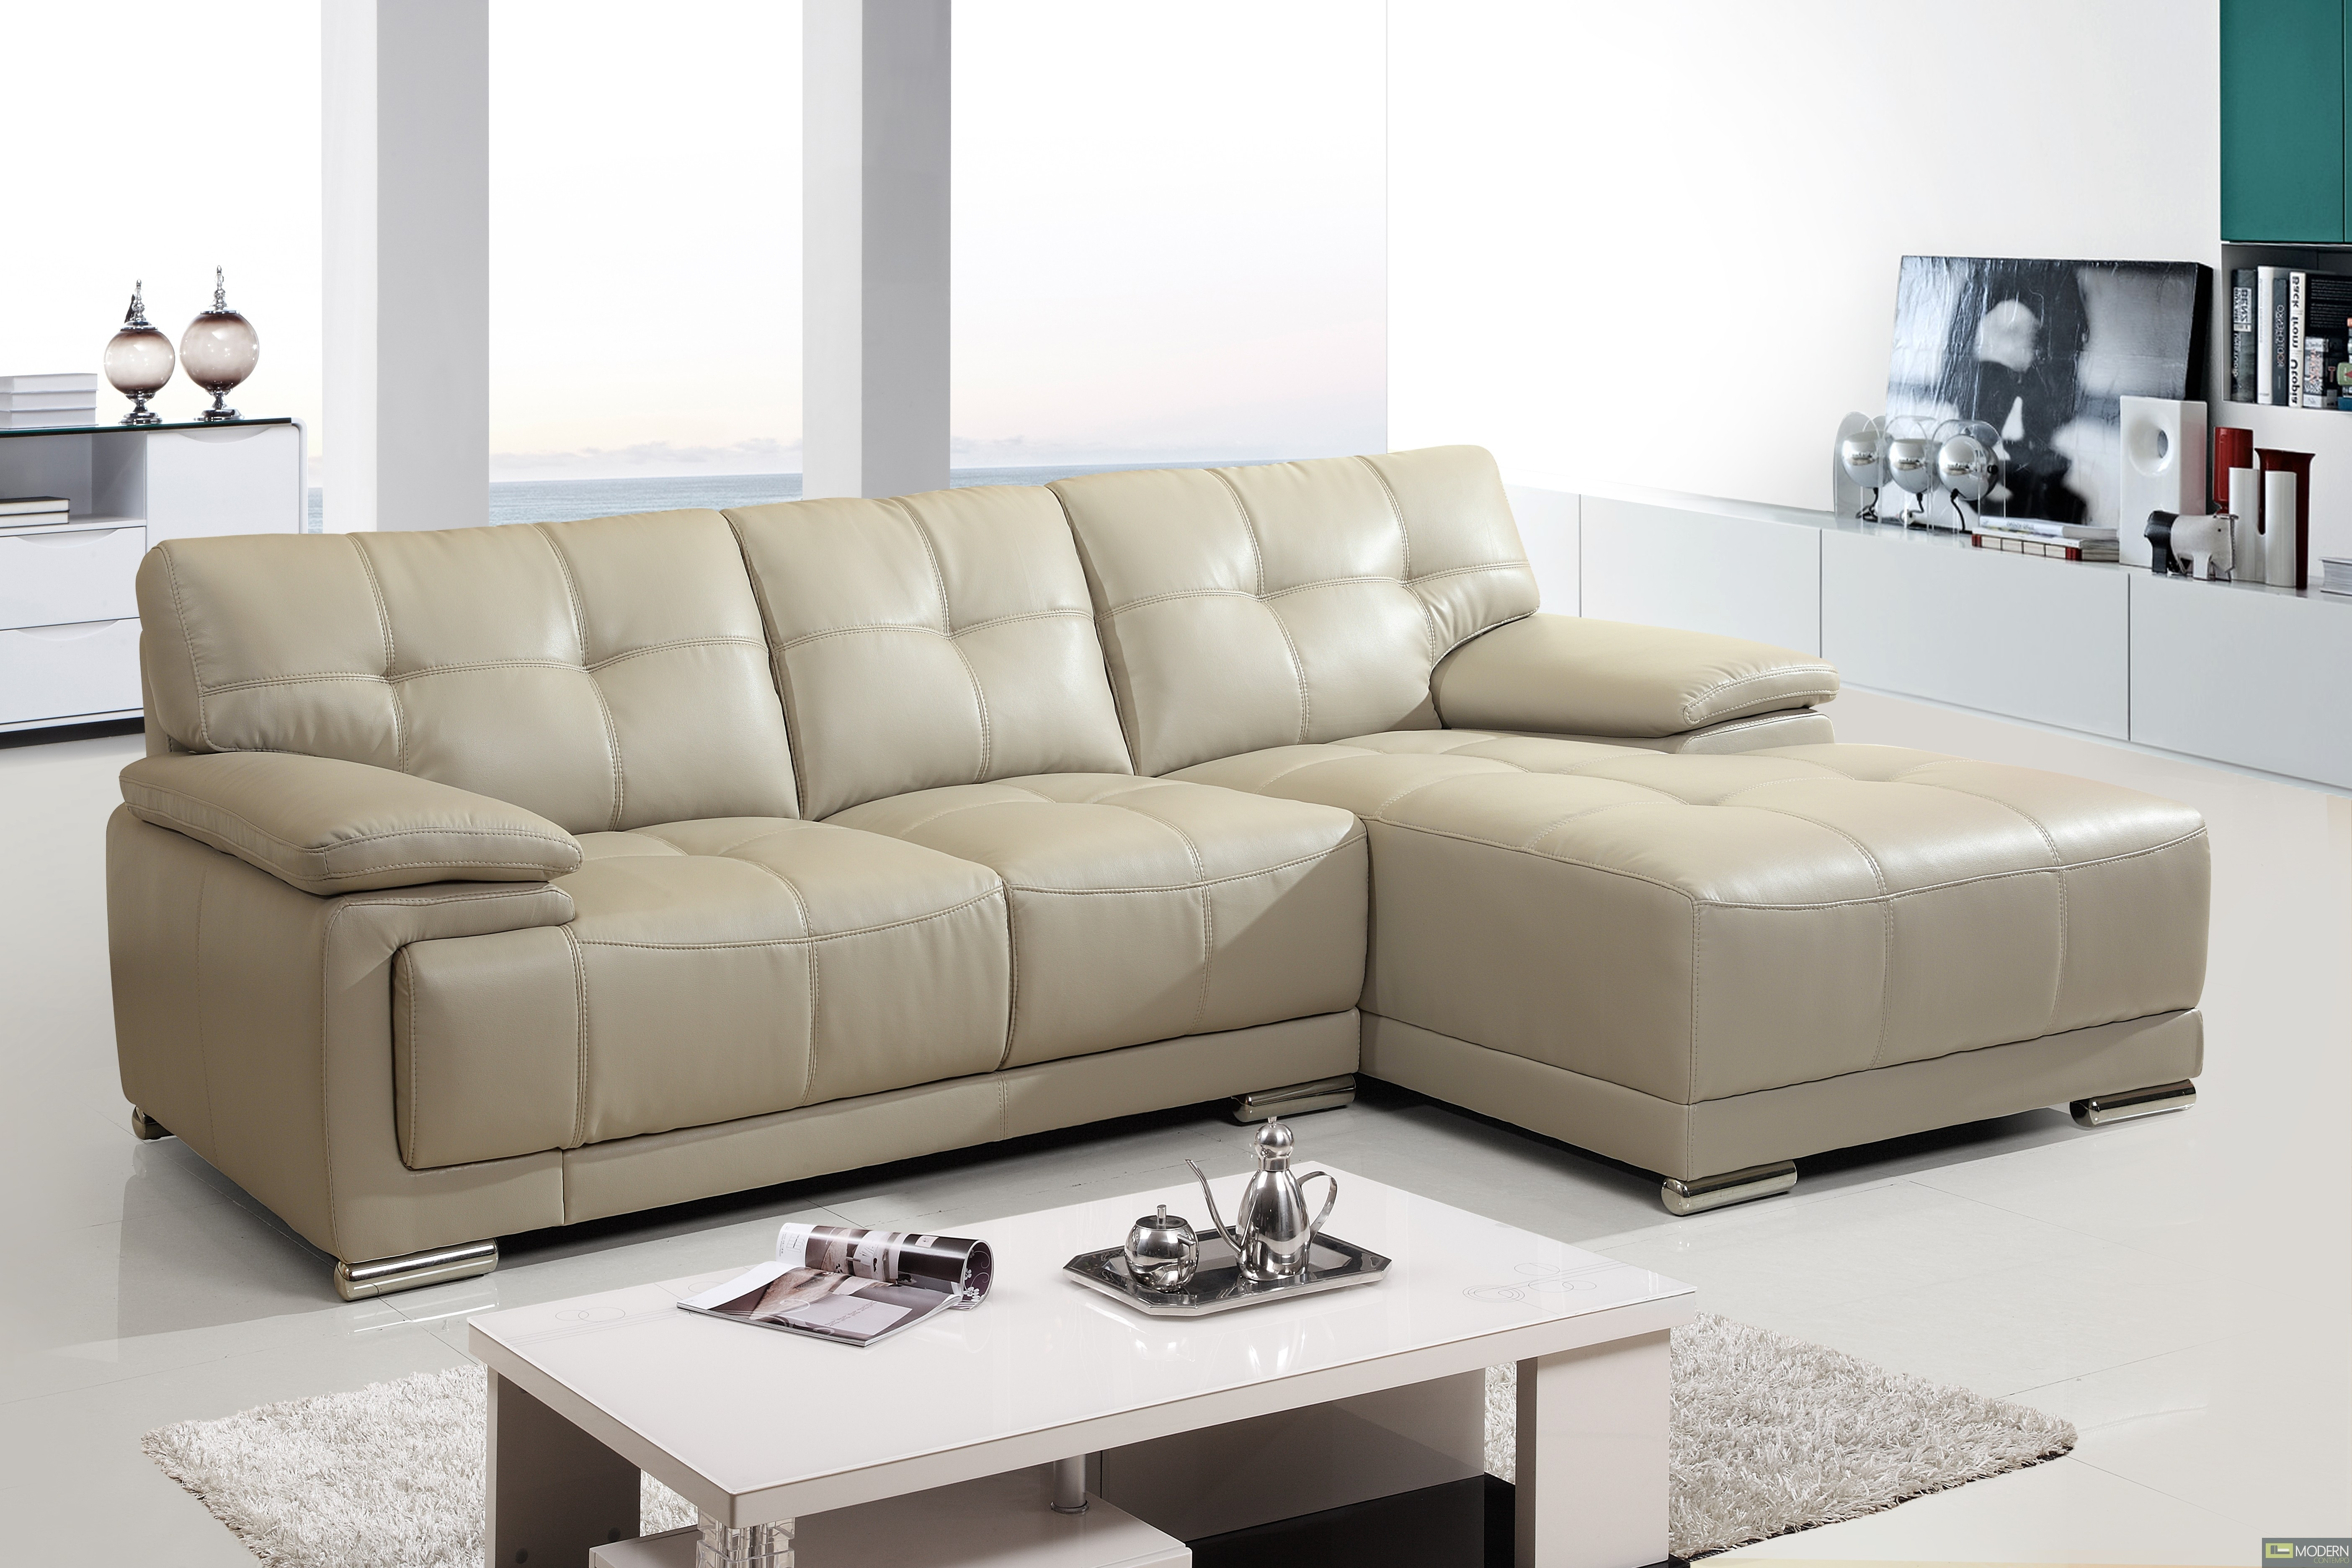 Modern Sectional Sofas Ontario Remarkable S8864 Cloud Living Room with Ontario Sectional Sofas (Image 7 of 10)